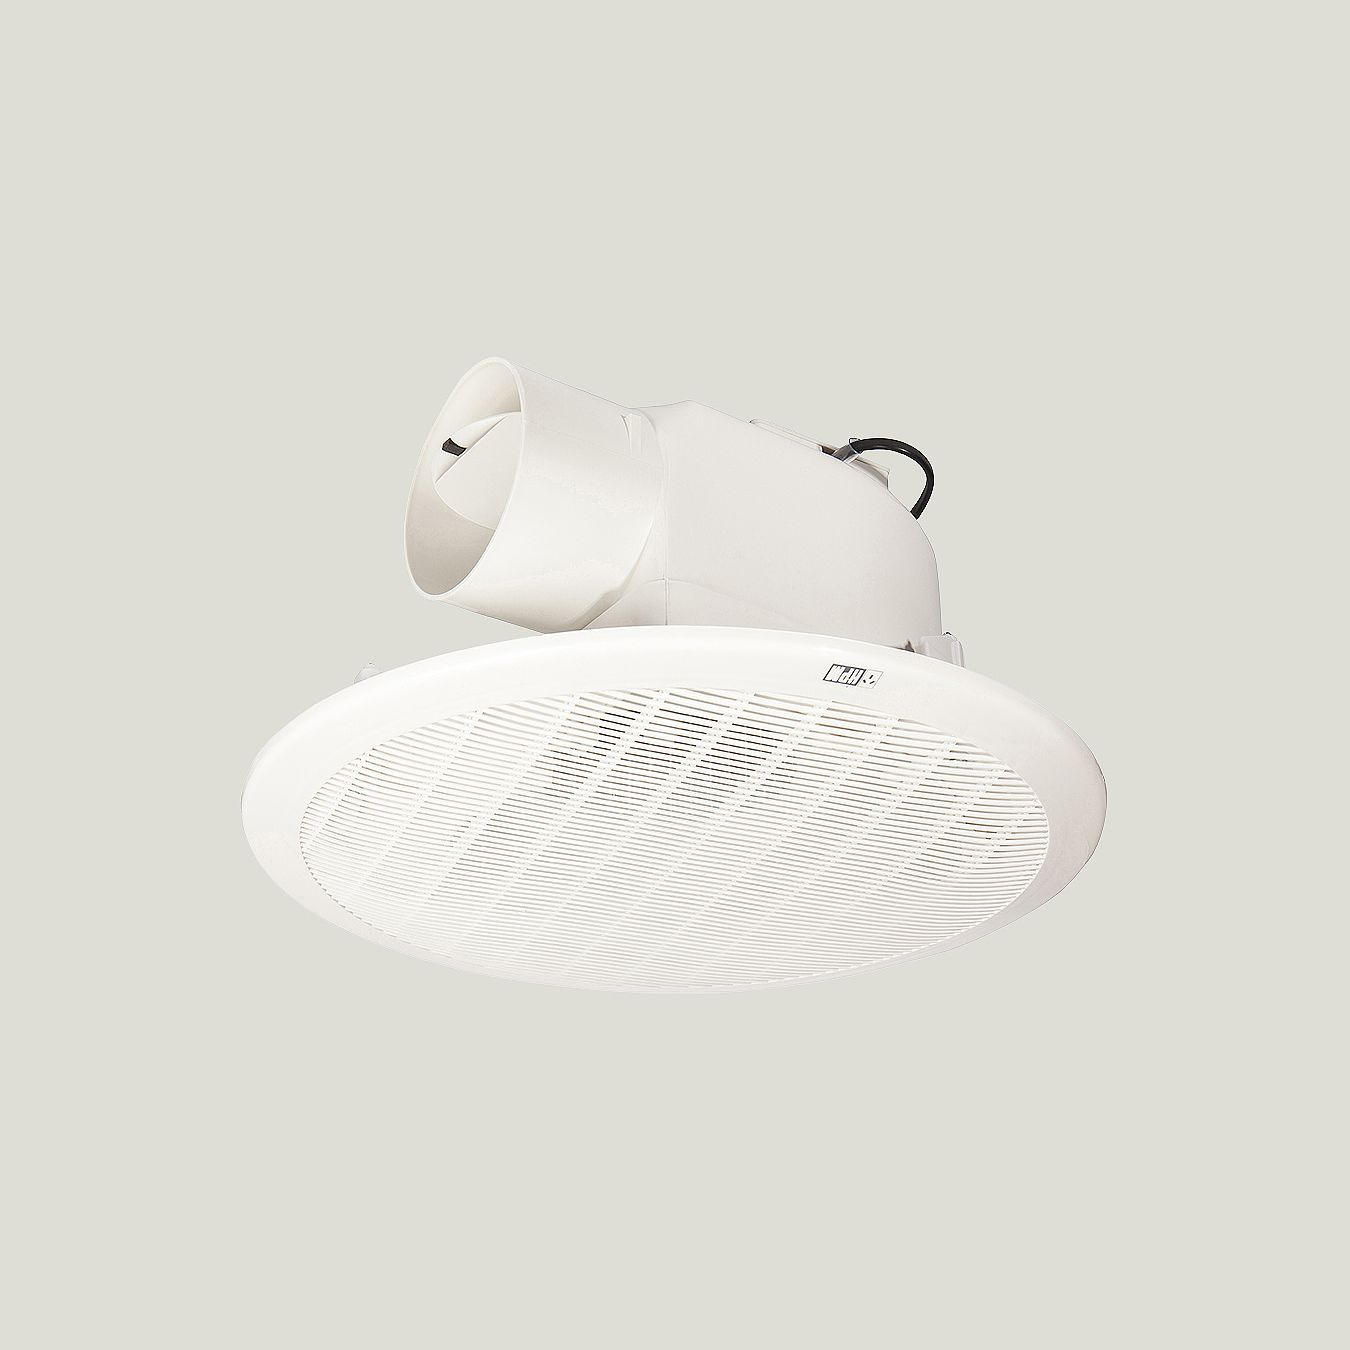 Hpm Ceiling Exhaust Fan Light Ceiling Fans Ideas